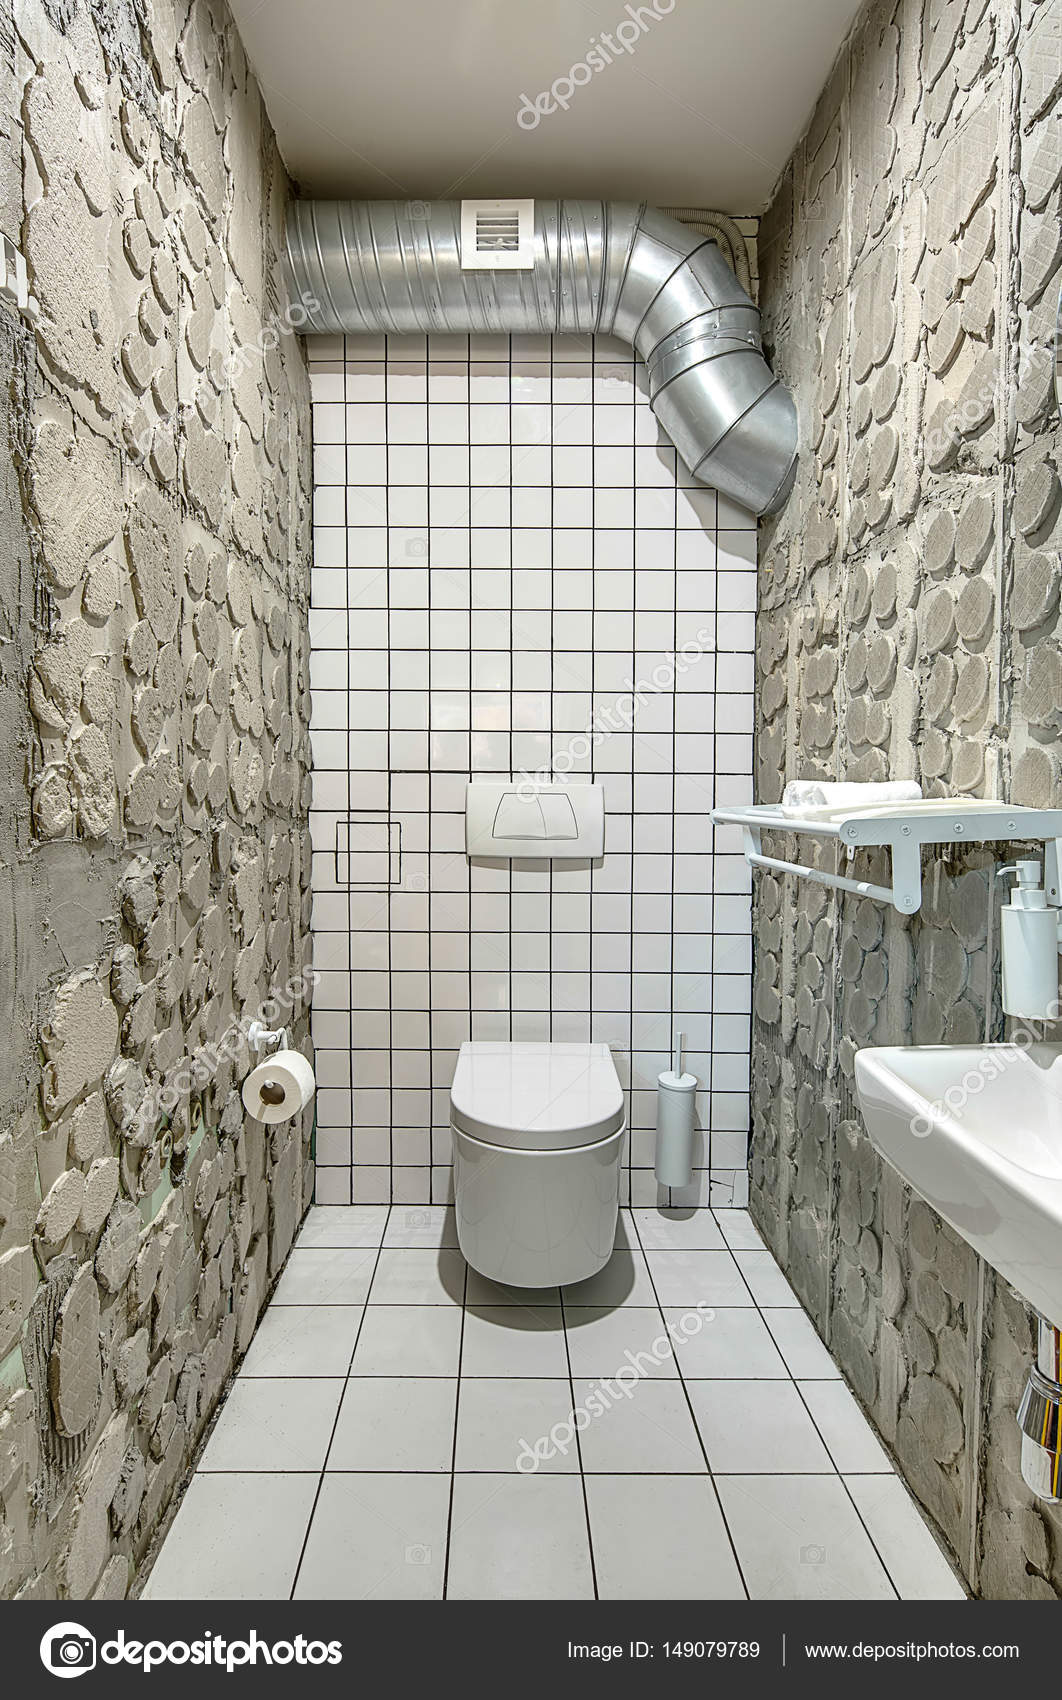 Restroom In A Cafe In A Loft Style With Tiled White Walls And Concrete  Walls. There Is A White Toilet, Sink, Shelf With Towels, Mirror, Paper  Holder, ...